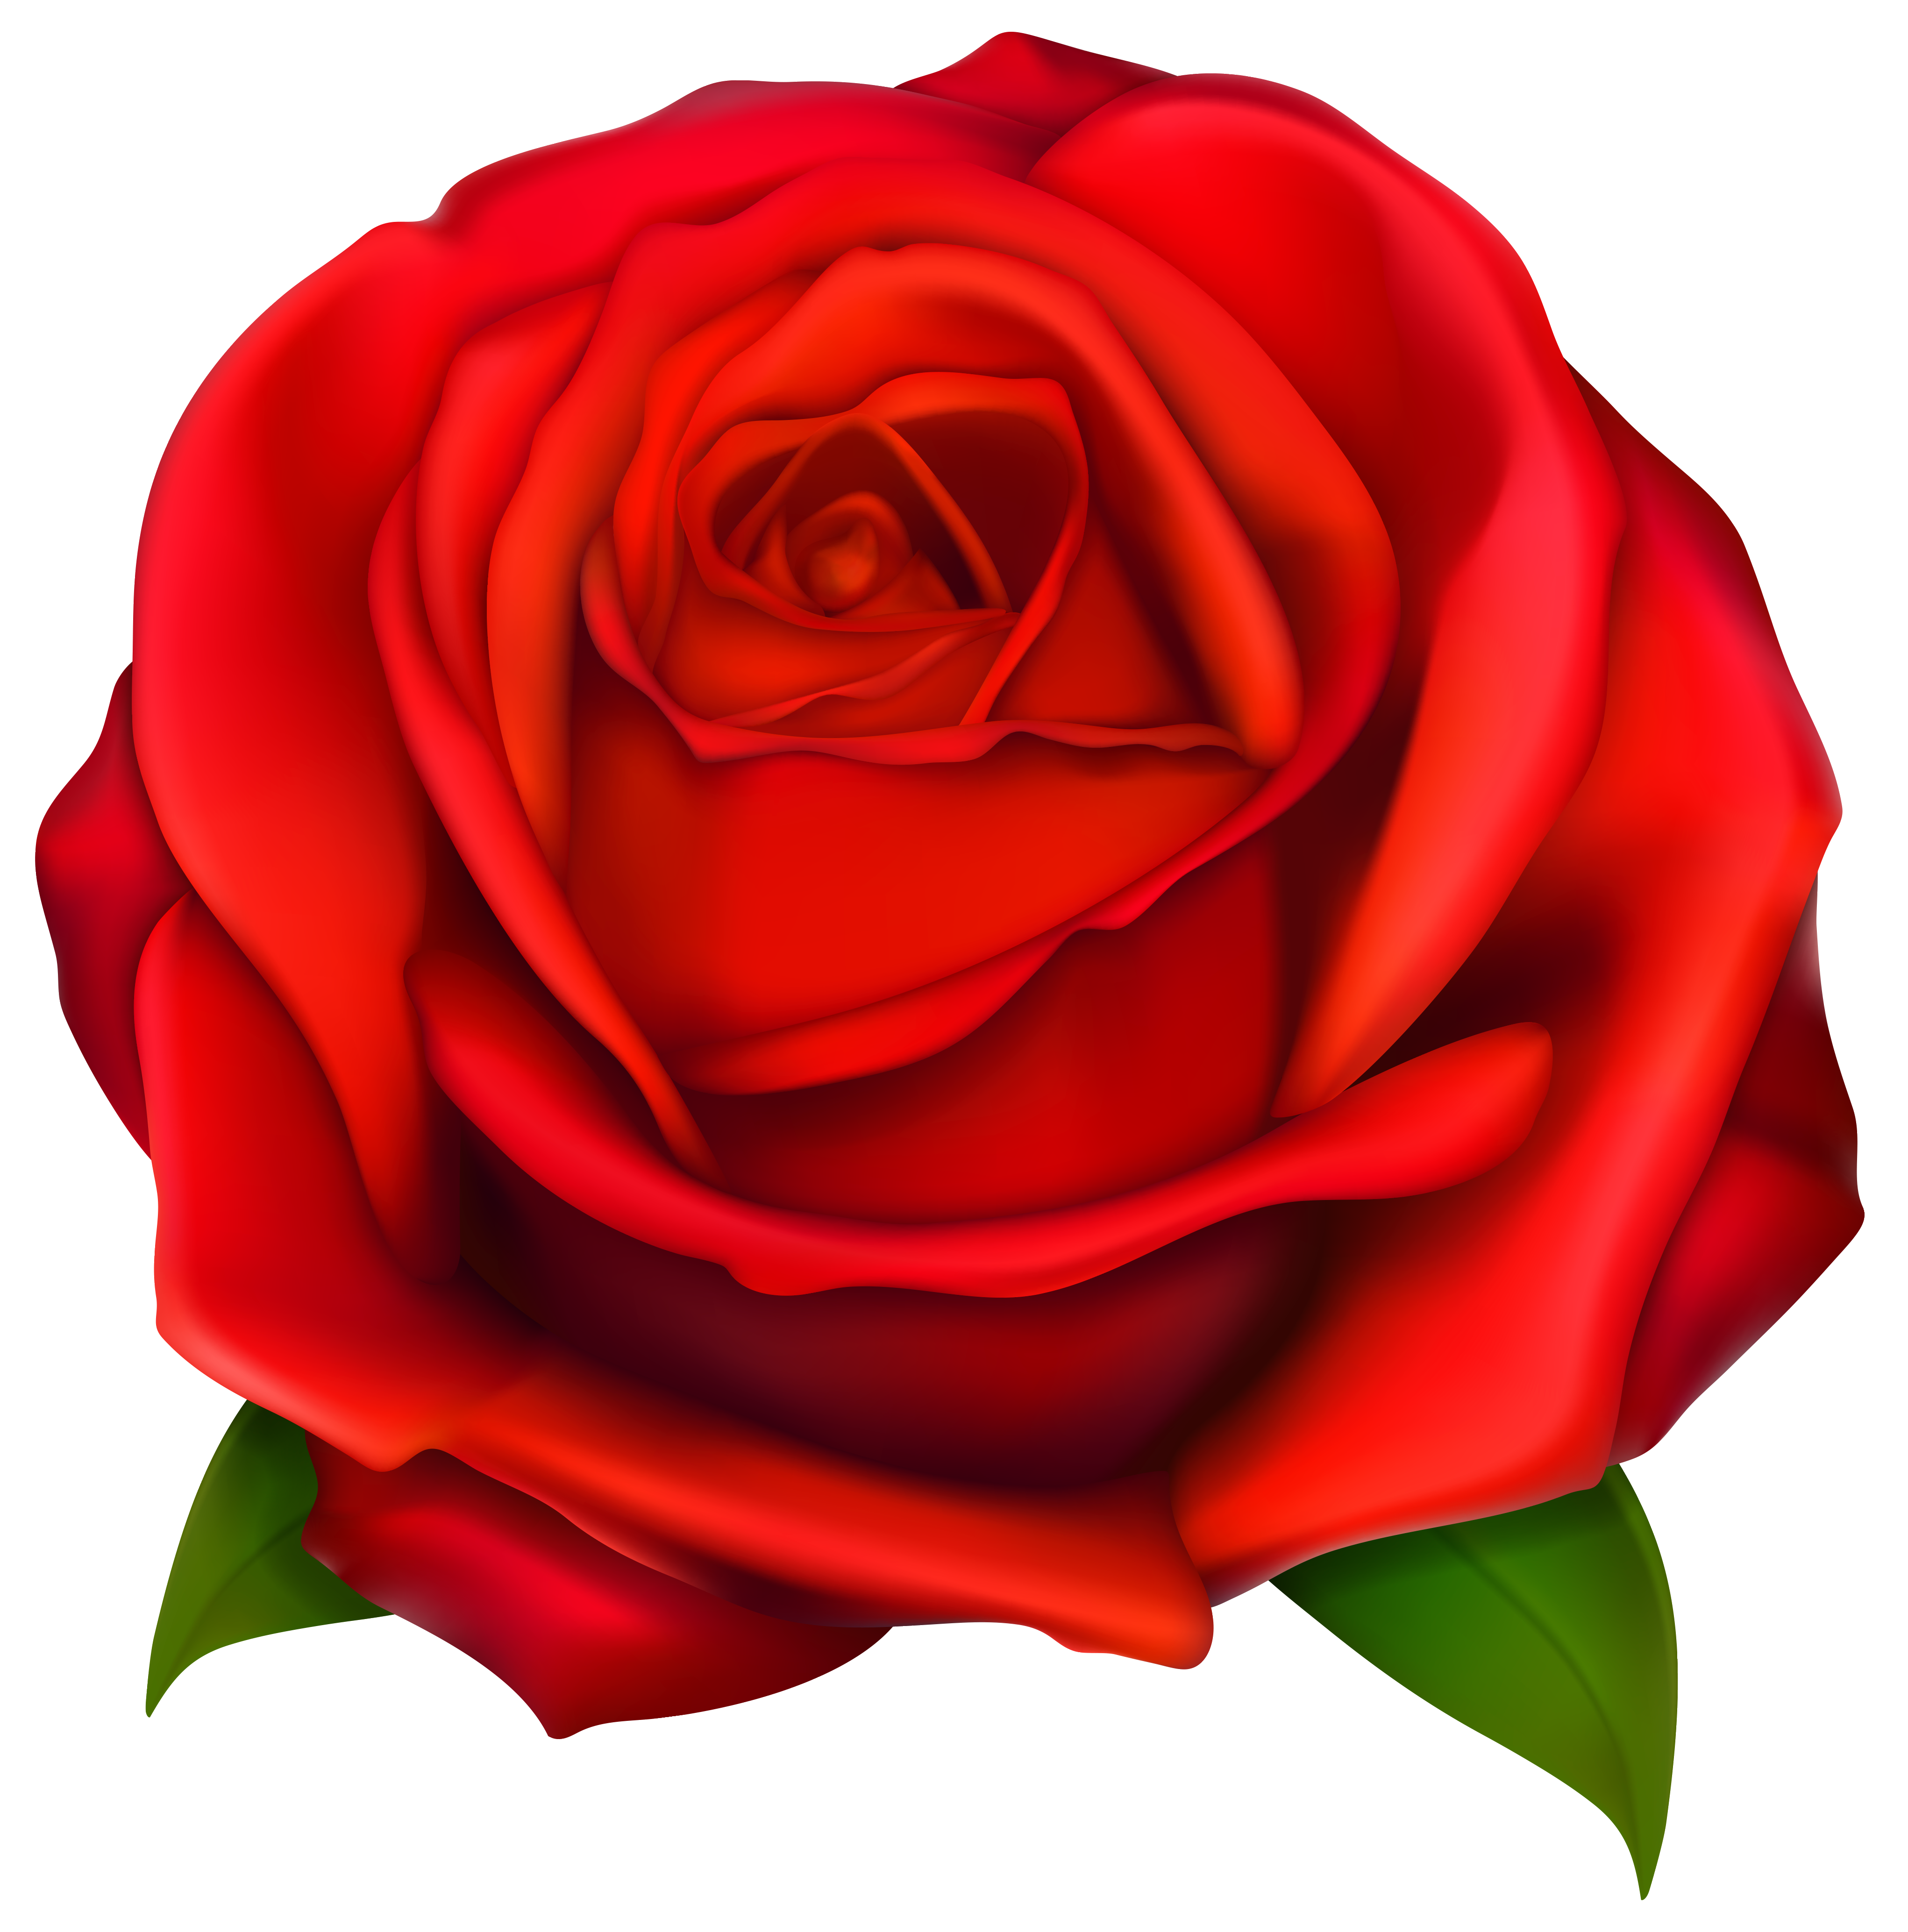 Roses clipart. Image of clip art